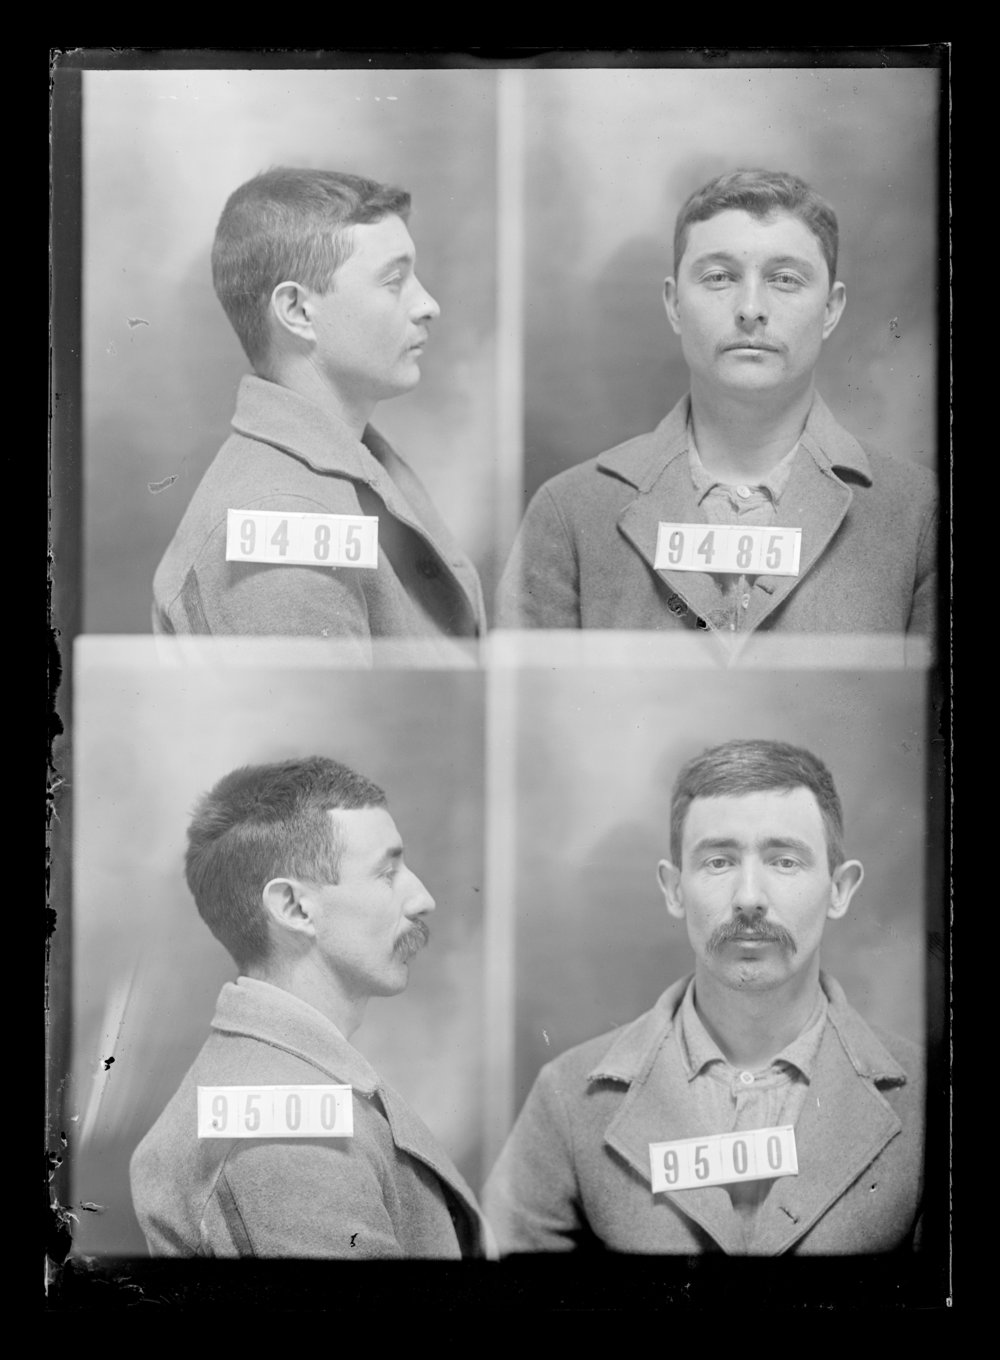 John L. Finley and George Sherrow, prisoners 9485 and 9500